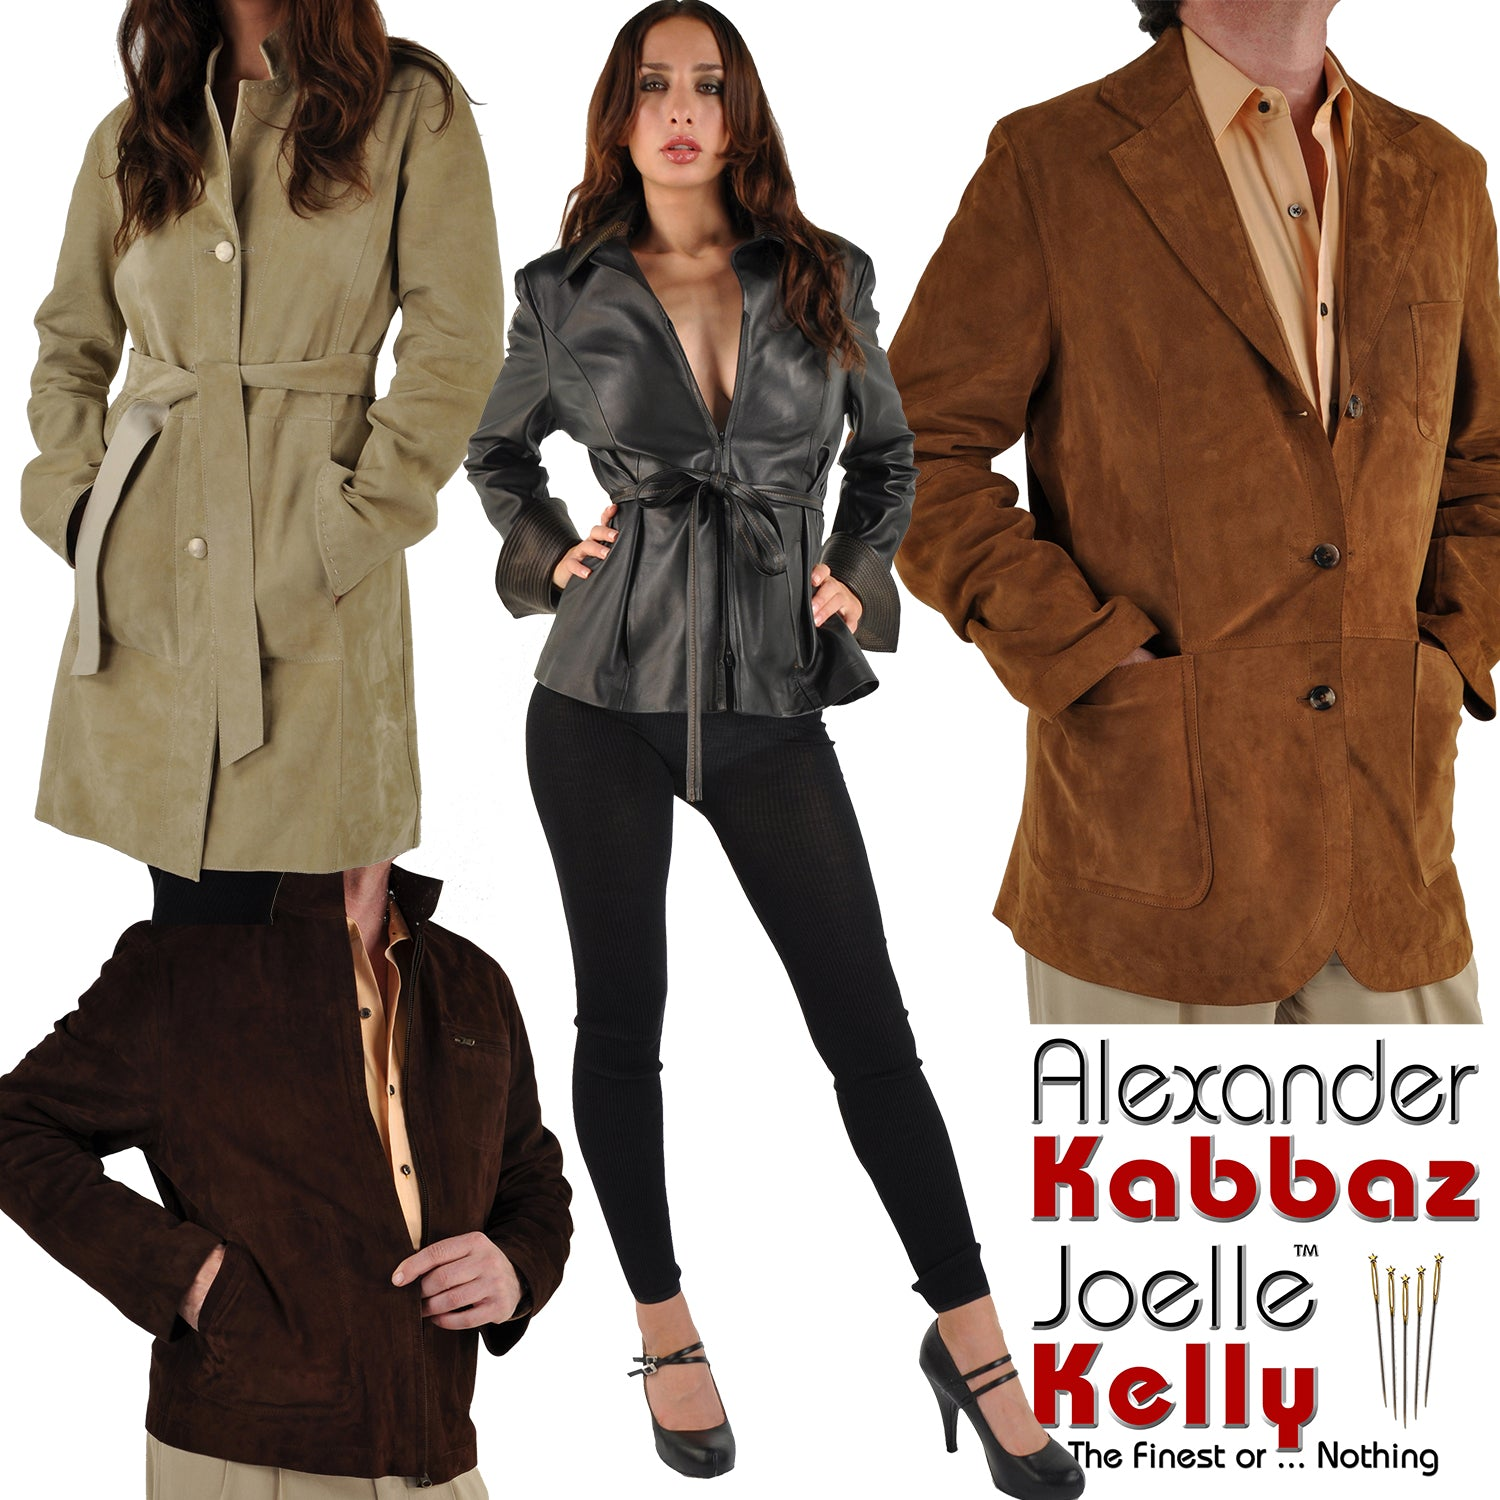 Bespoke Leather Outerwear by Kabbaz-Kelly